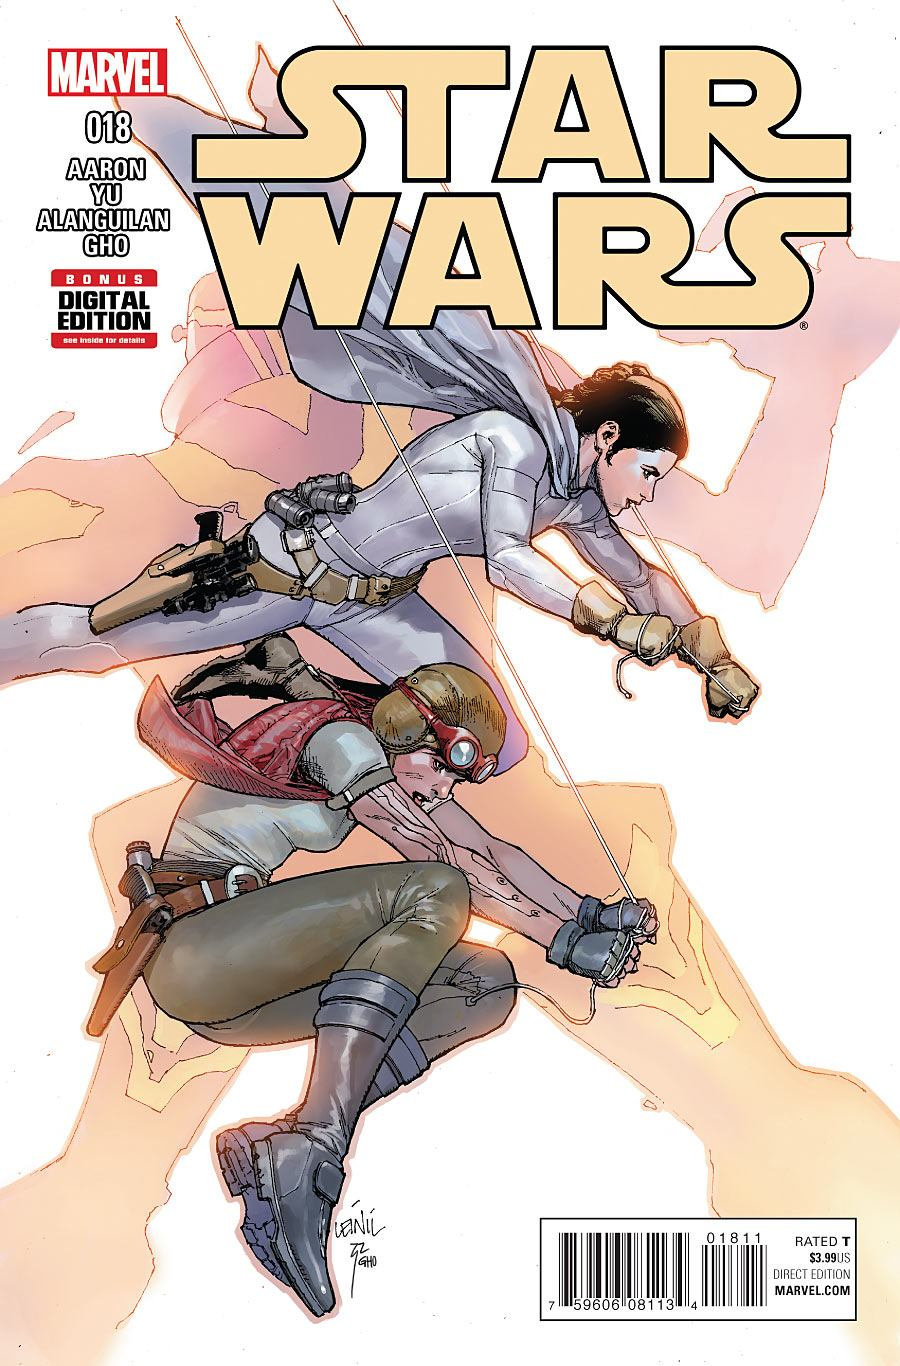 Star Wars #18 Review